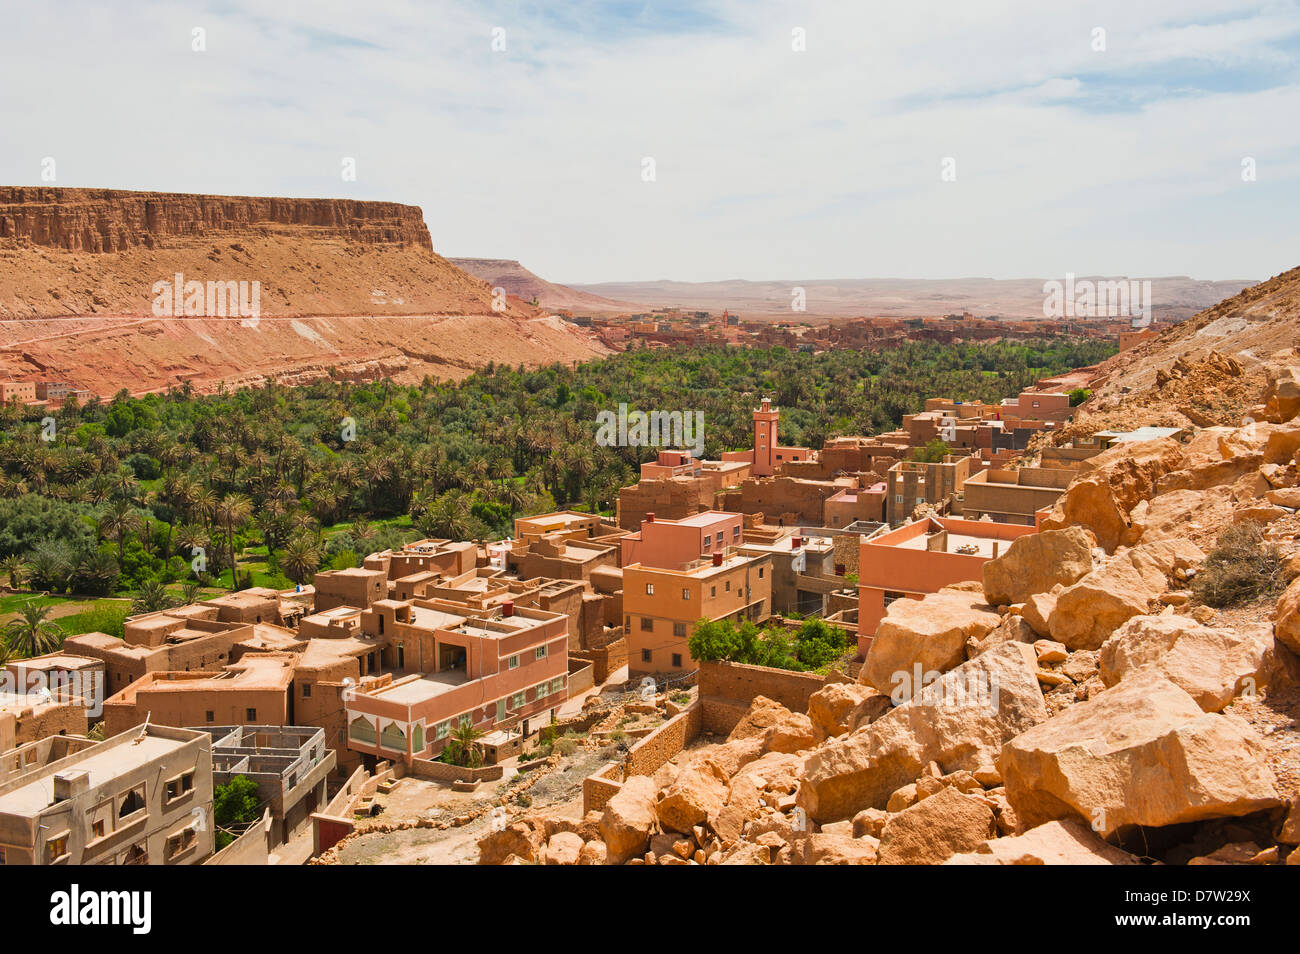 Typical remote Moroccan desert town on the road to the Todra Gorge, Morocco, North Africa - Stock Image